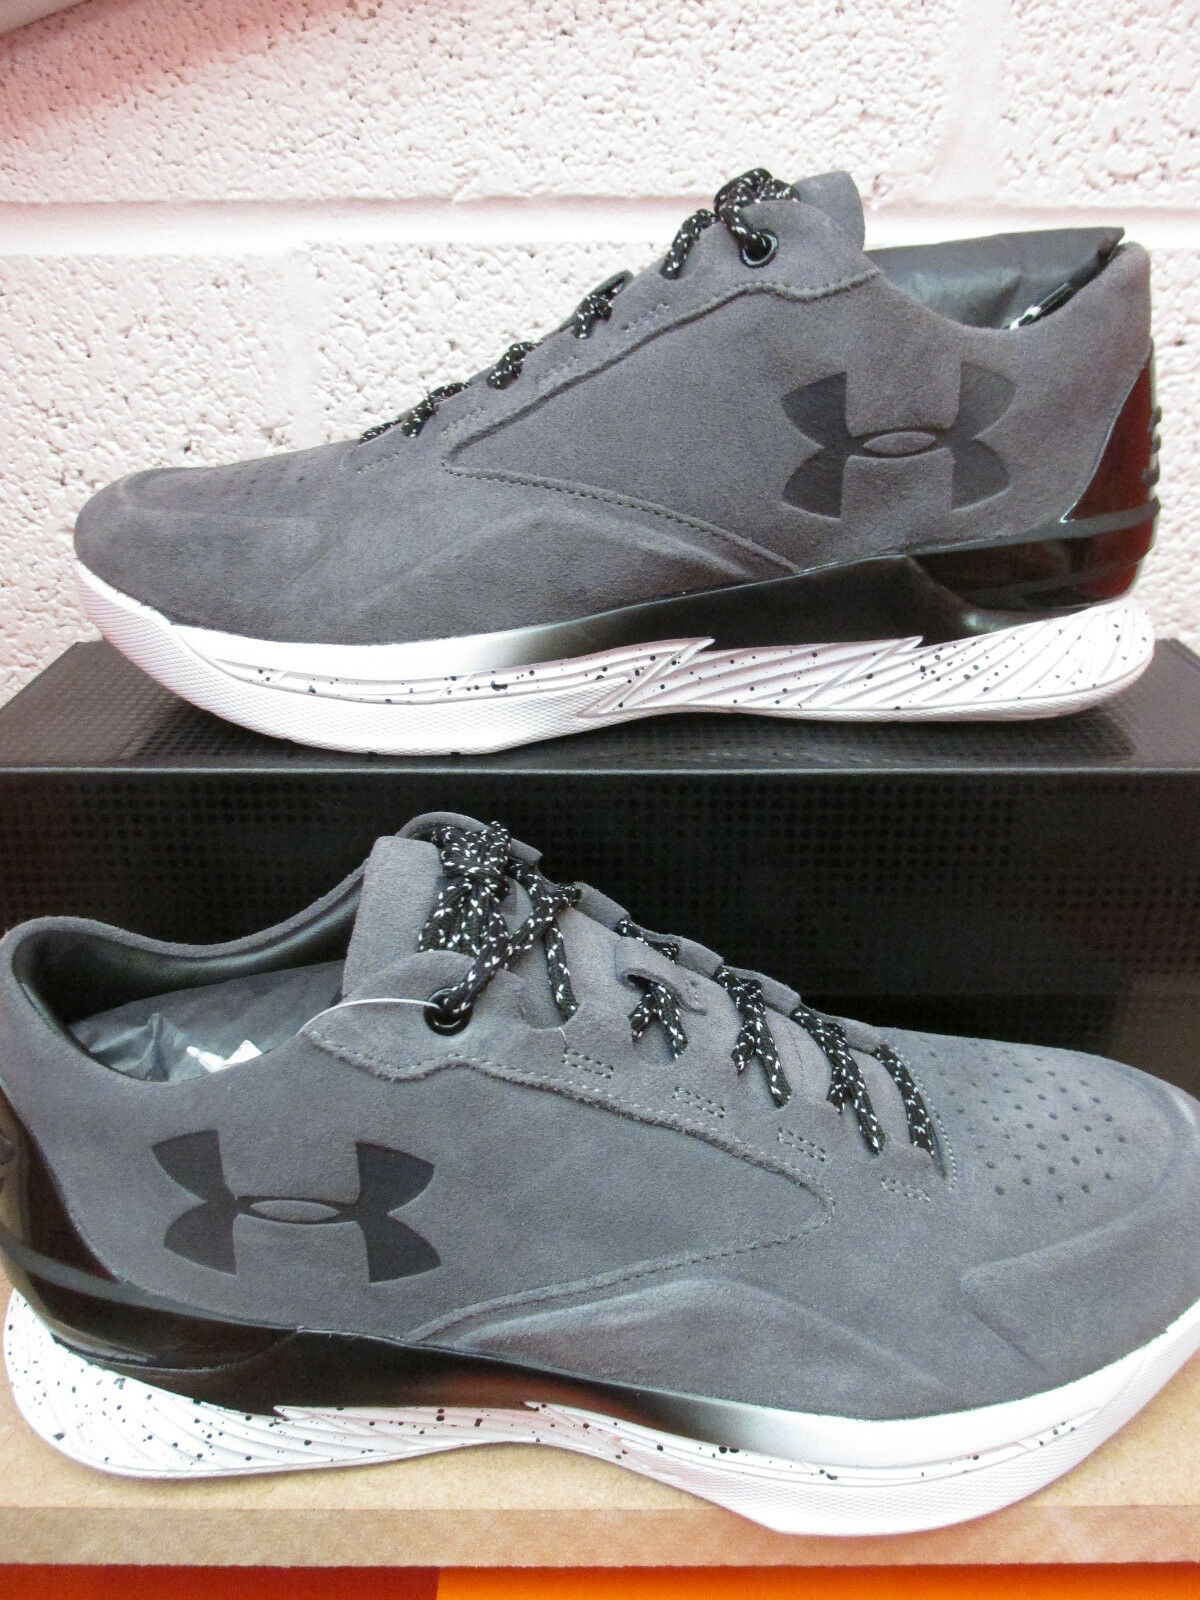 Under Armour Ua Curry 1 Luxe Bas Sde Baskets 1296619 040 Baskets